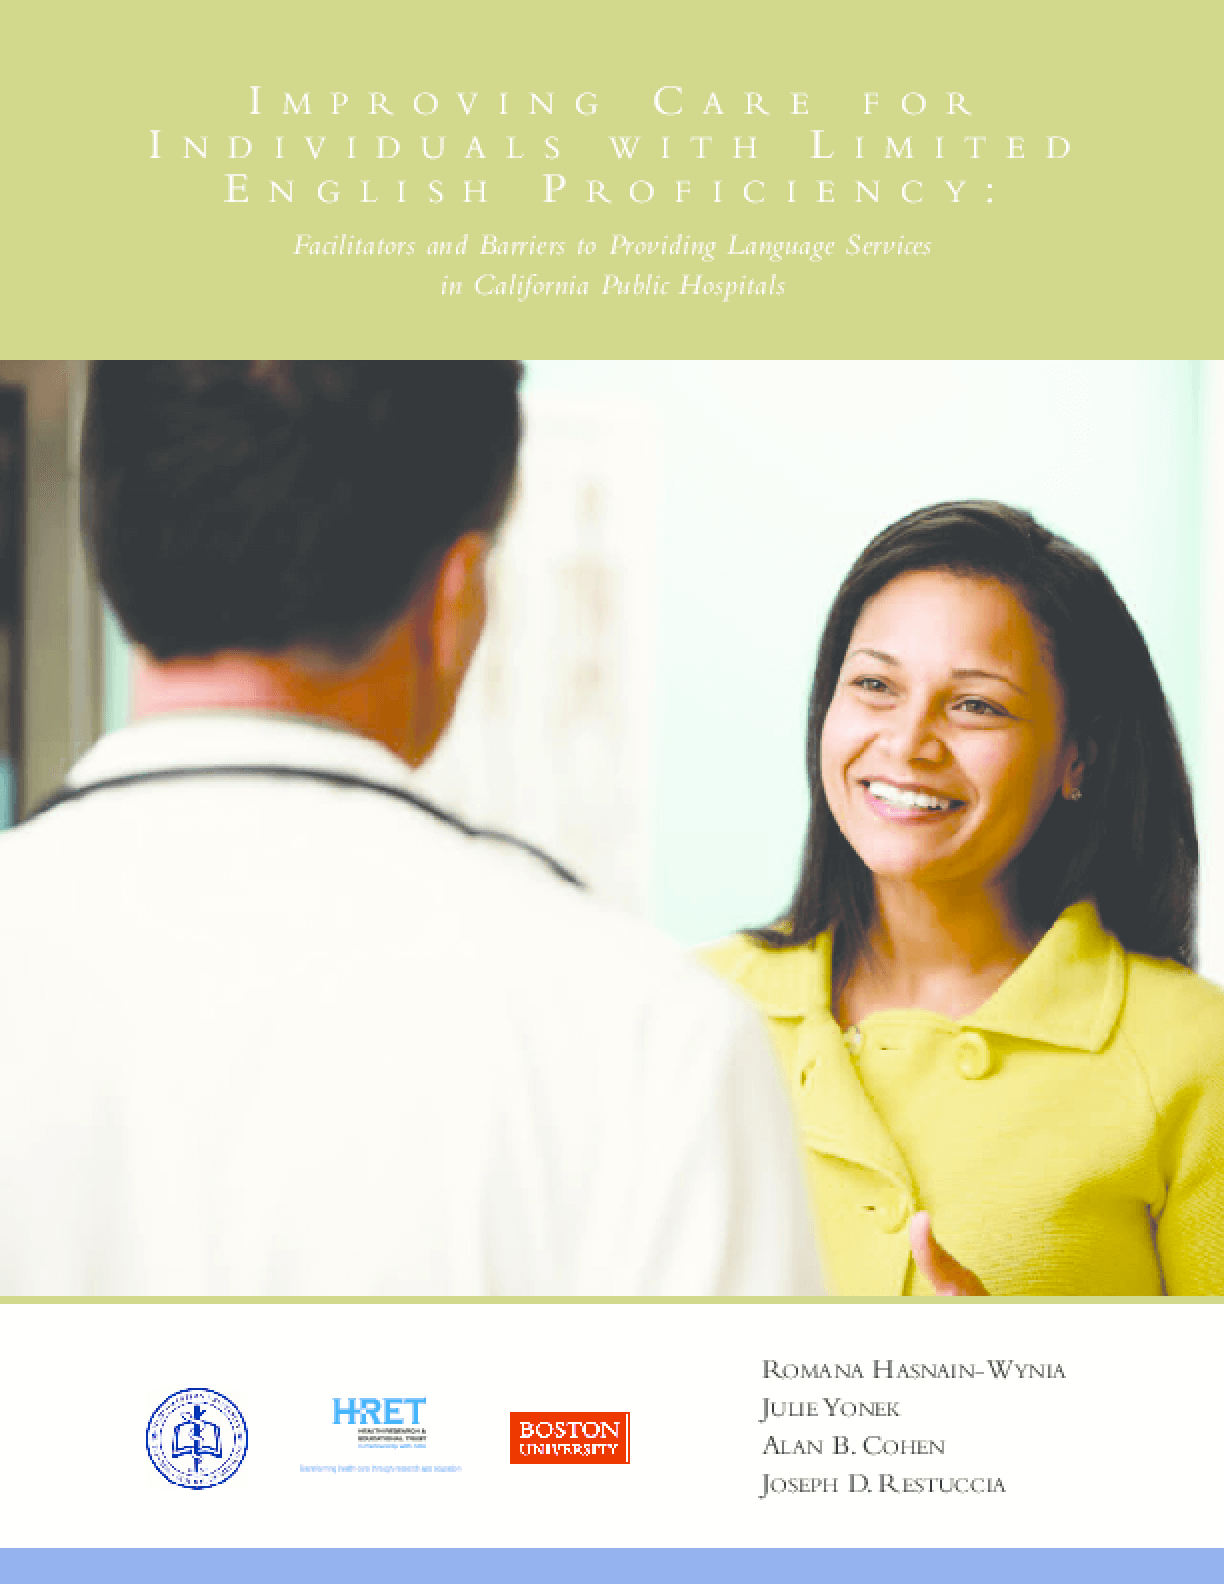 Improving Care for Individuals With Limited English Proficiency: Facilitators and Barriers to Providing Language Services in California Public Hospitals